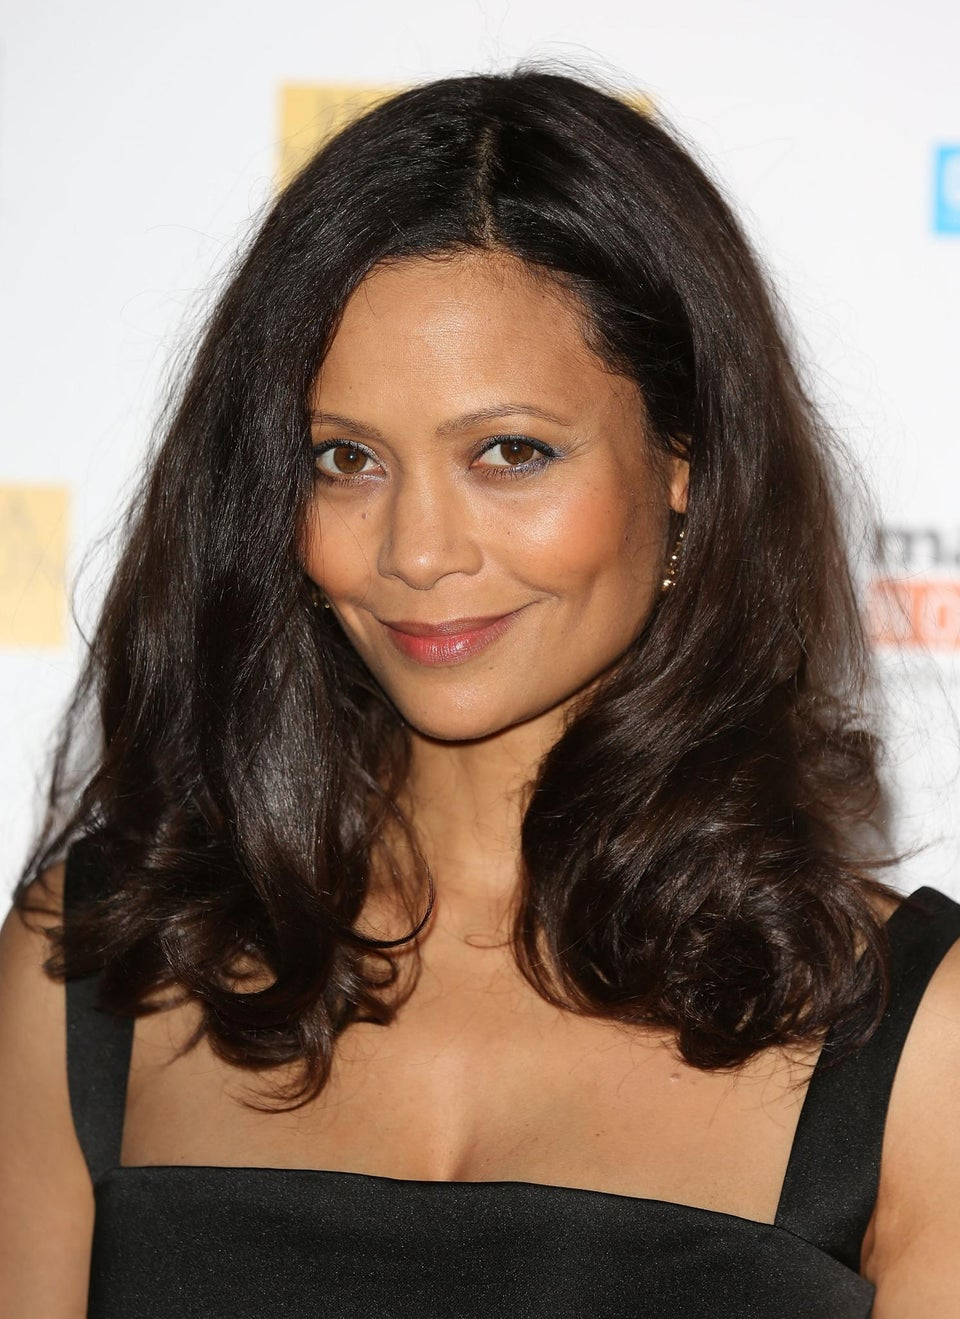 Thandie Newton to Co-Star in NBC's 'The Slap'